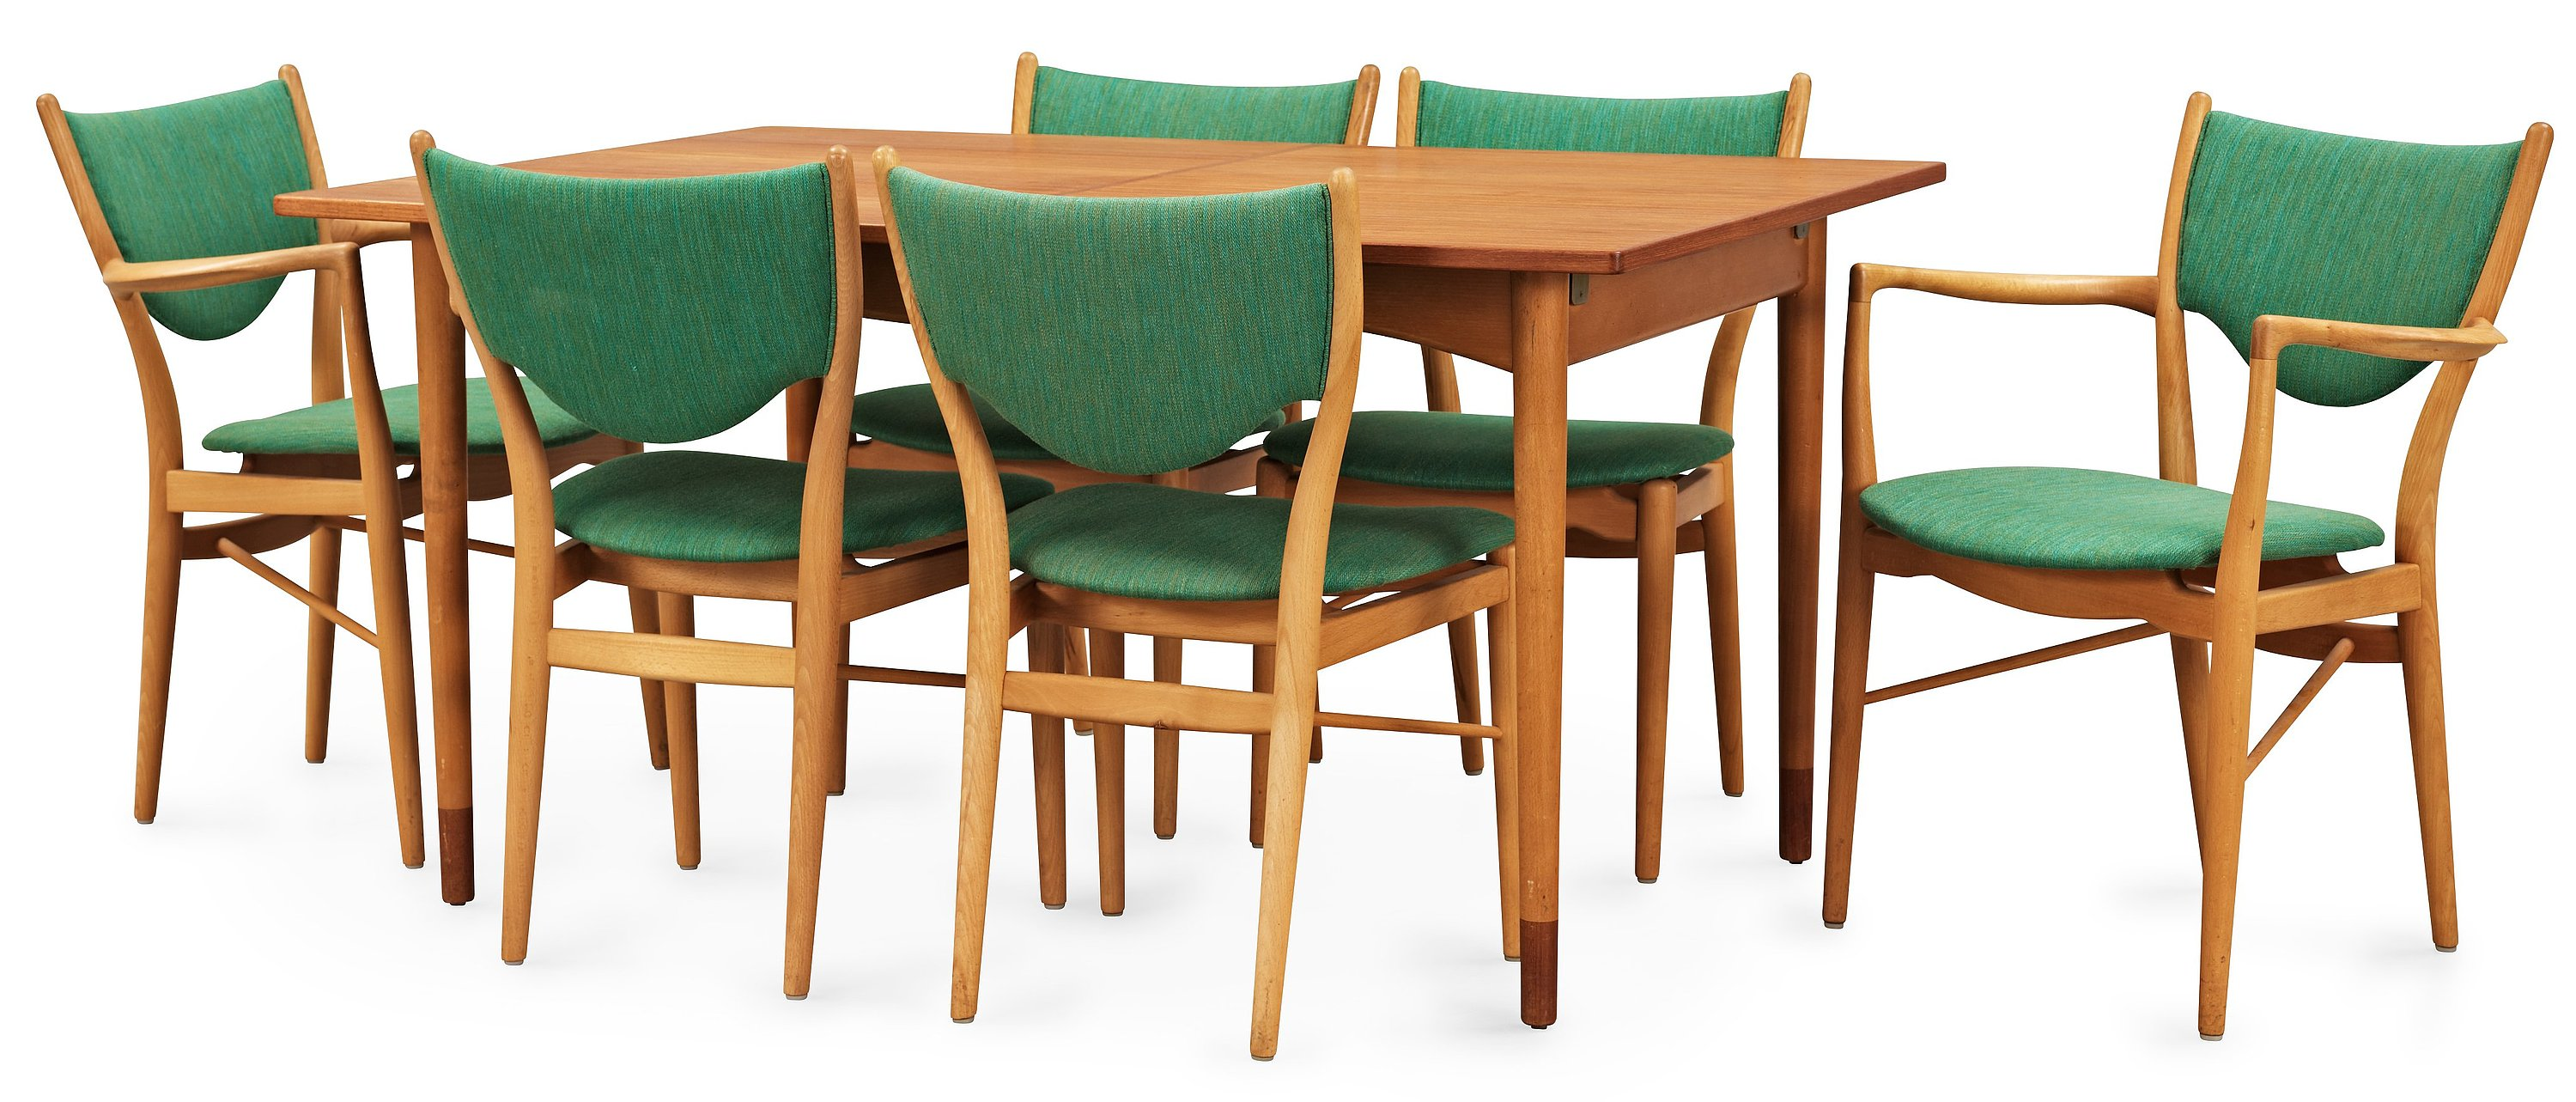 A Finn Juhl dining set of a teak and beech table, four beech 'BO-63' chairs and two armchairs, Bovirke.